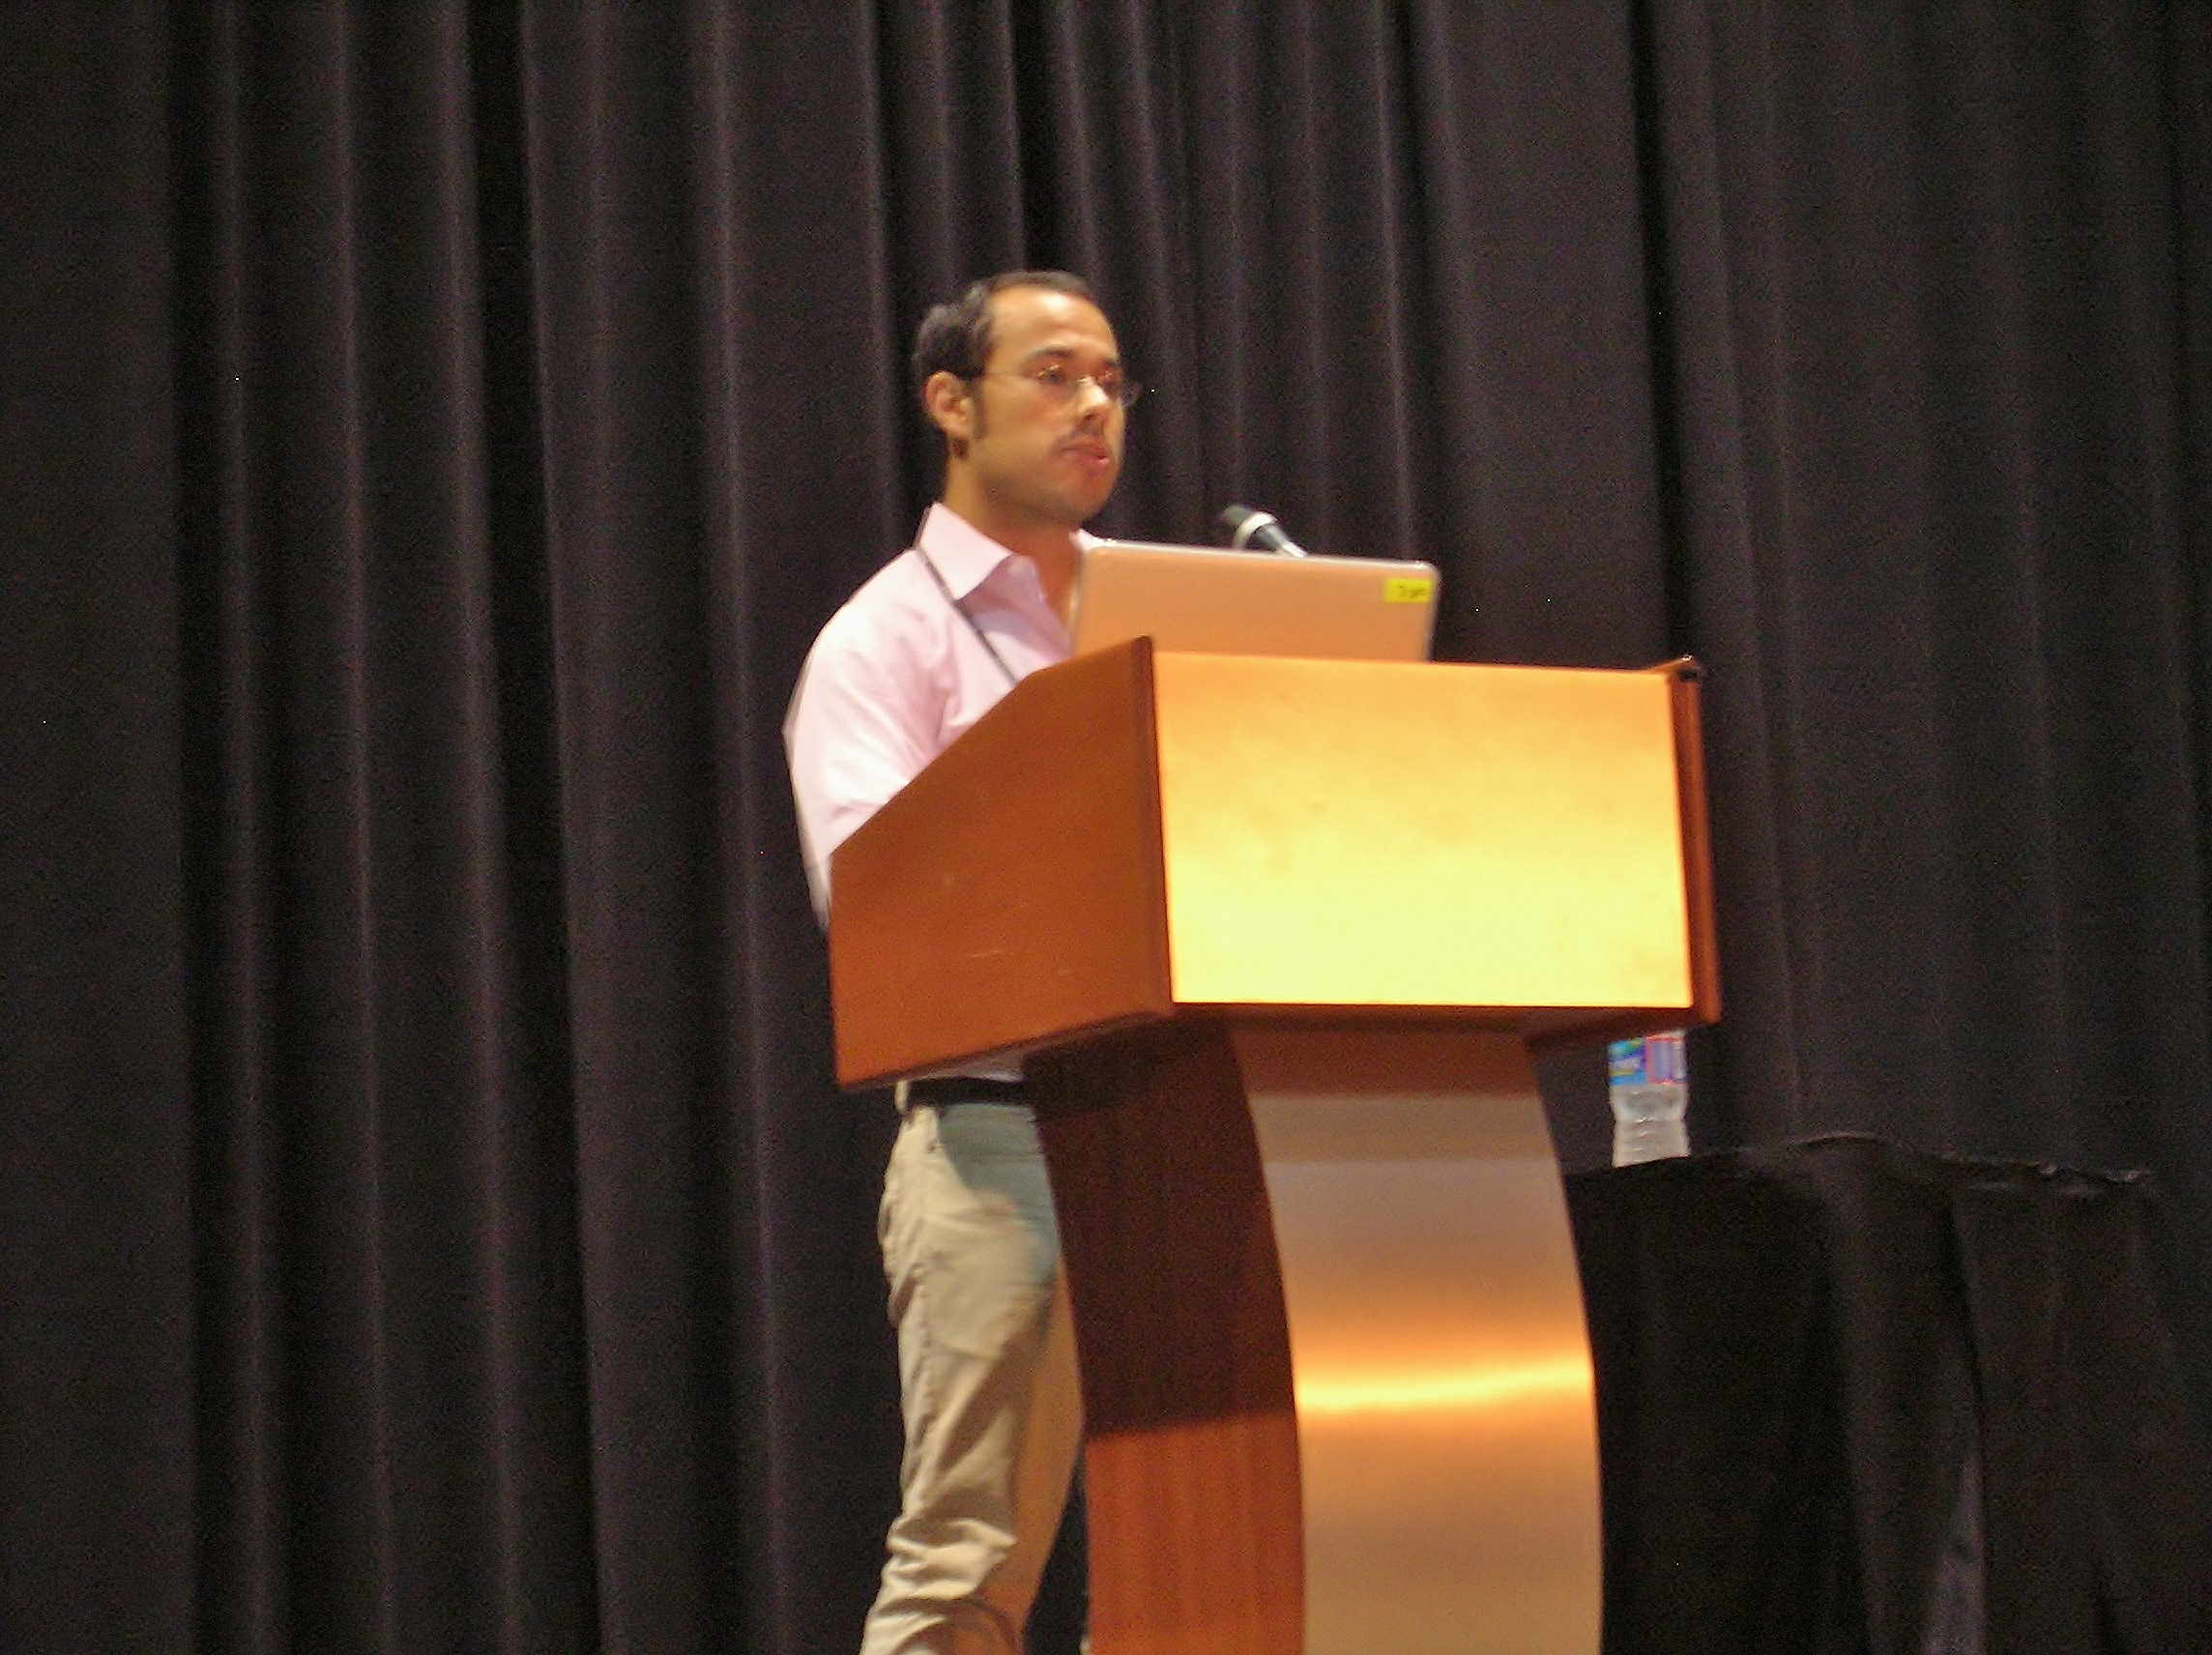 Dan Matute giving the Dobzhansky Prize Lecture at Evolution 2014 in Raleigh, NC.